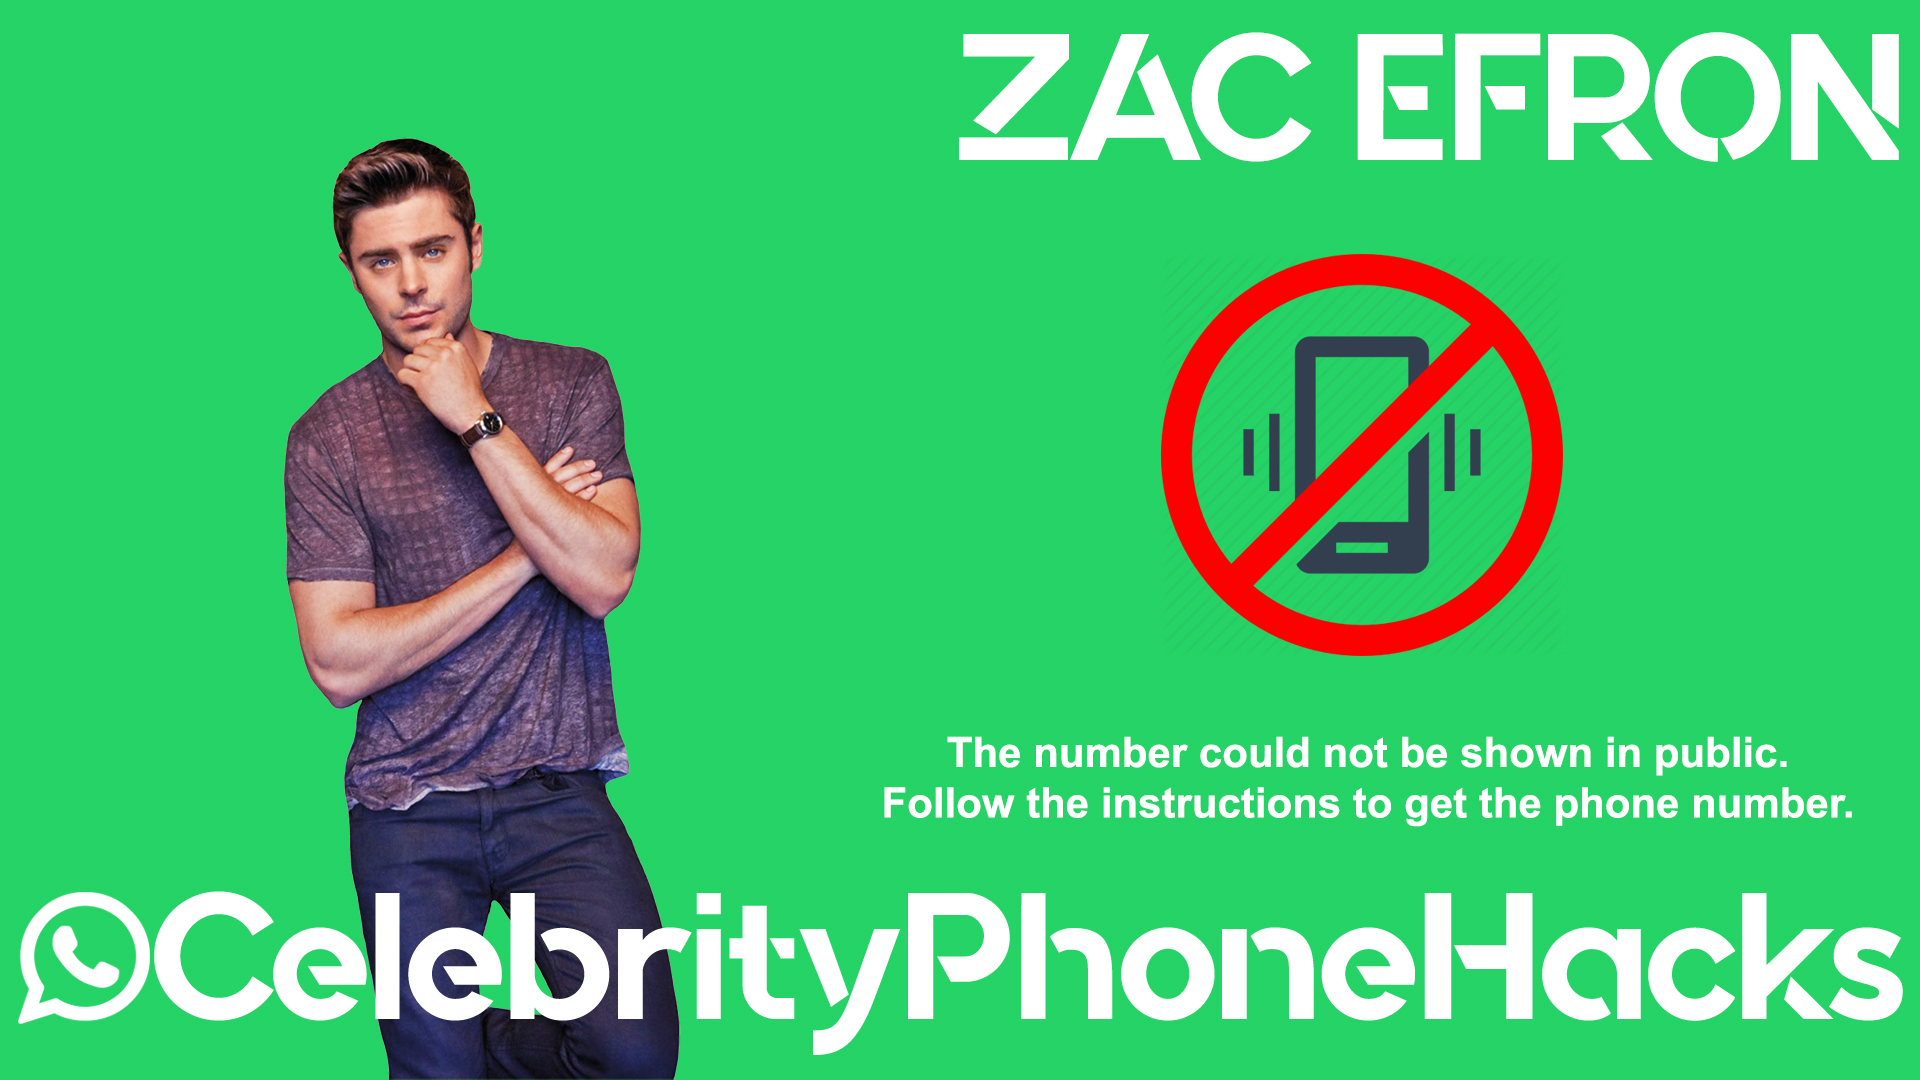 Zac Efron real phone number 2019 whatsapp hacked leaked